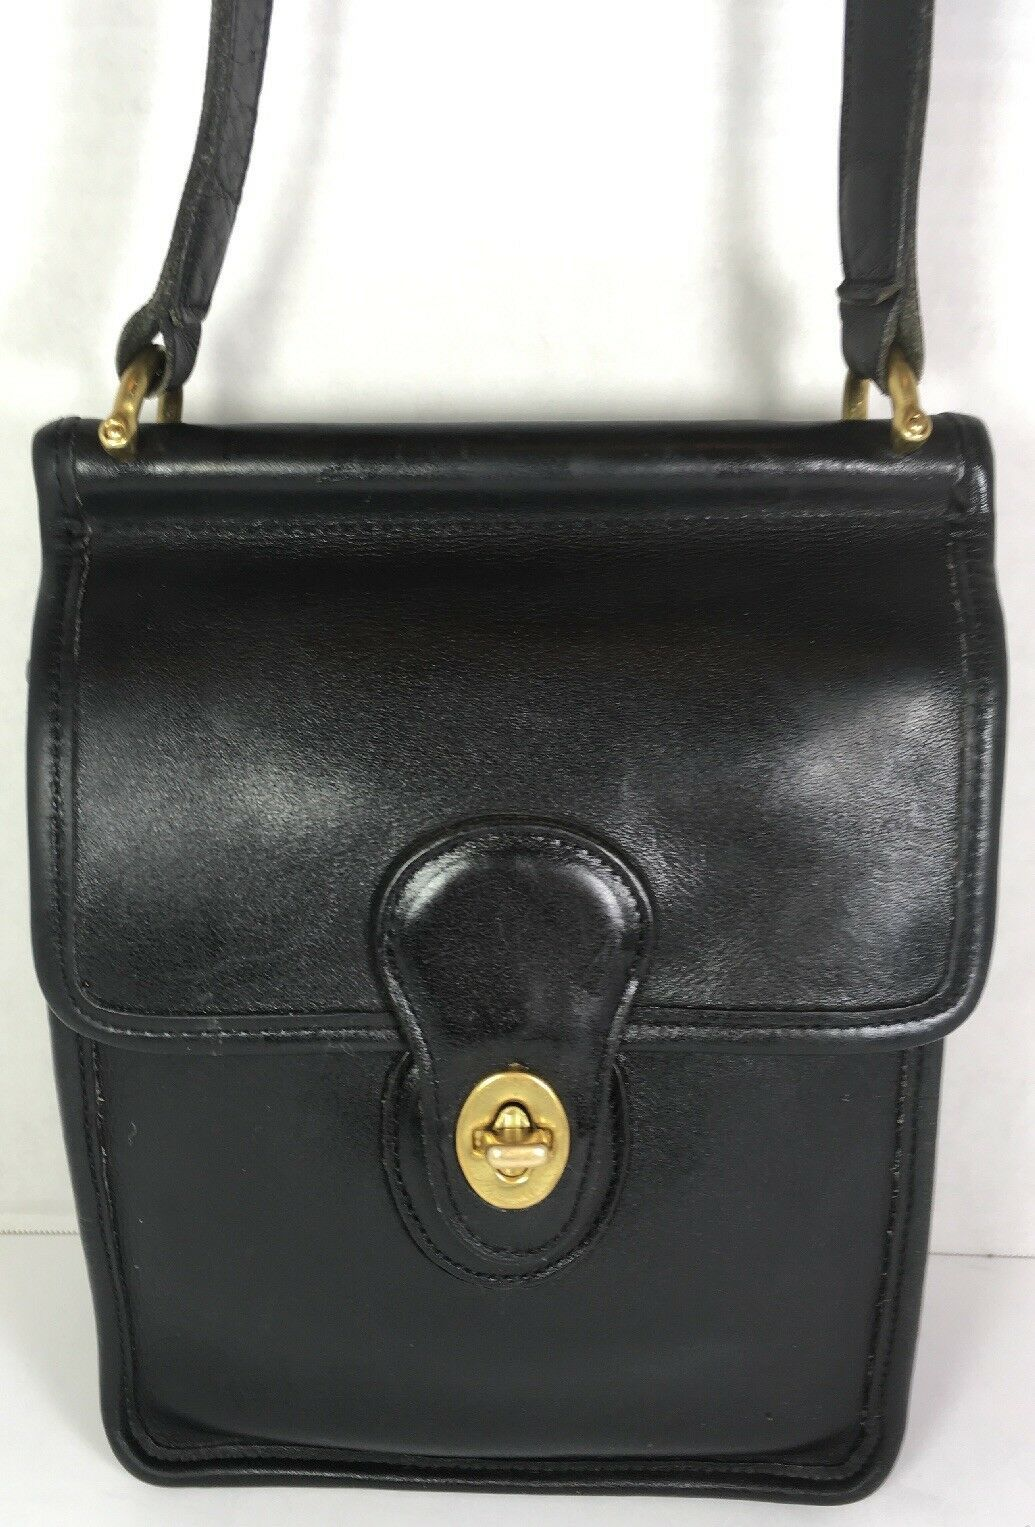 Coach Vintage Small Willis Smooth Black Leather Shoulder Bag-Made in USA